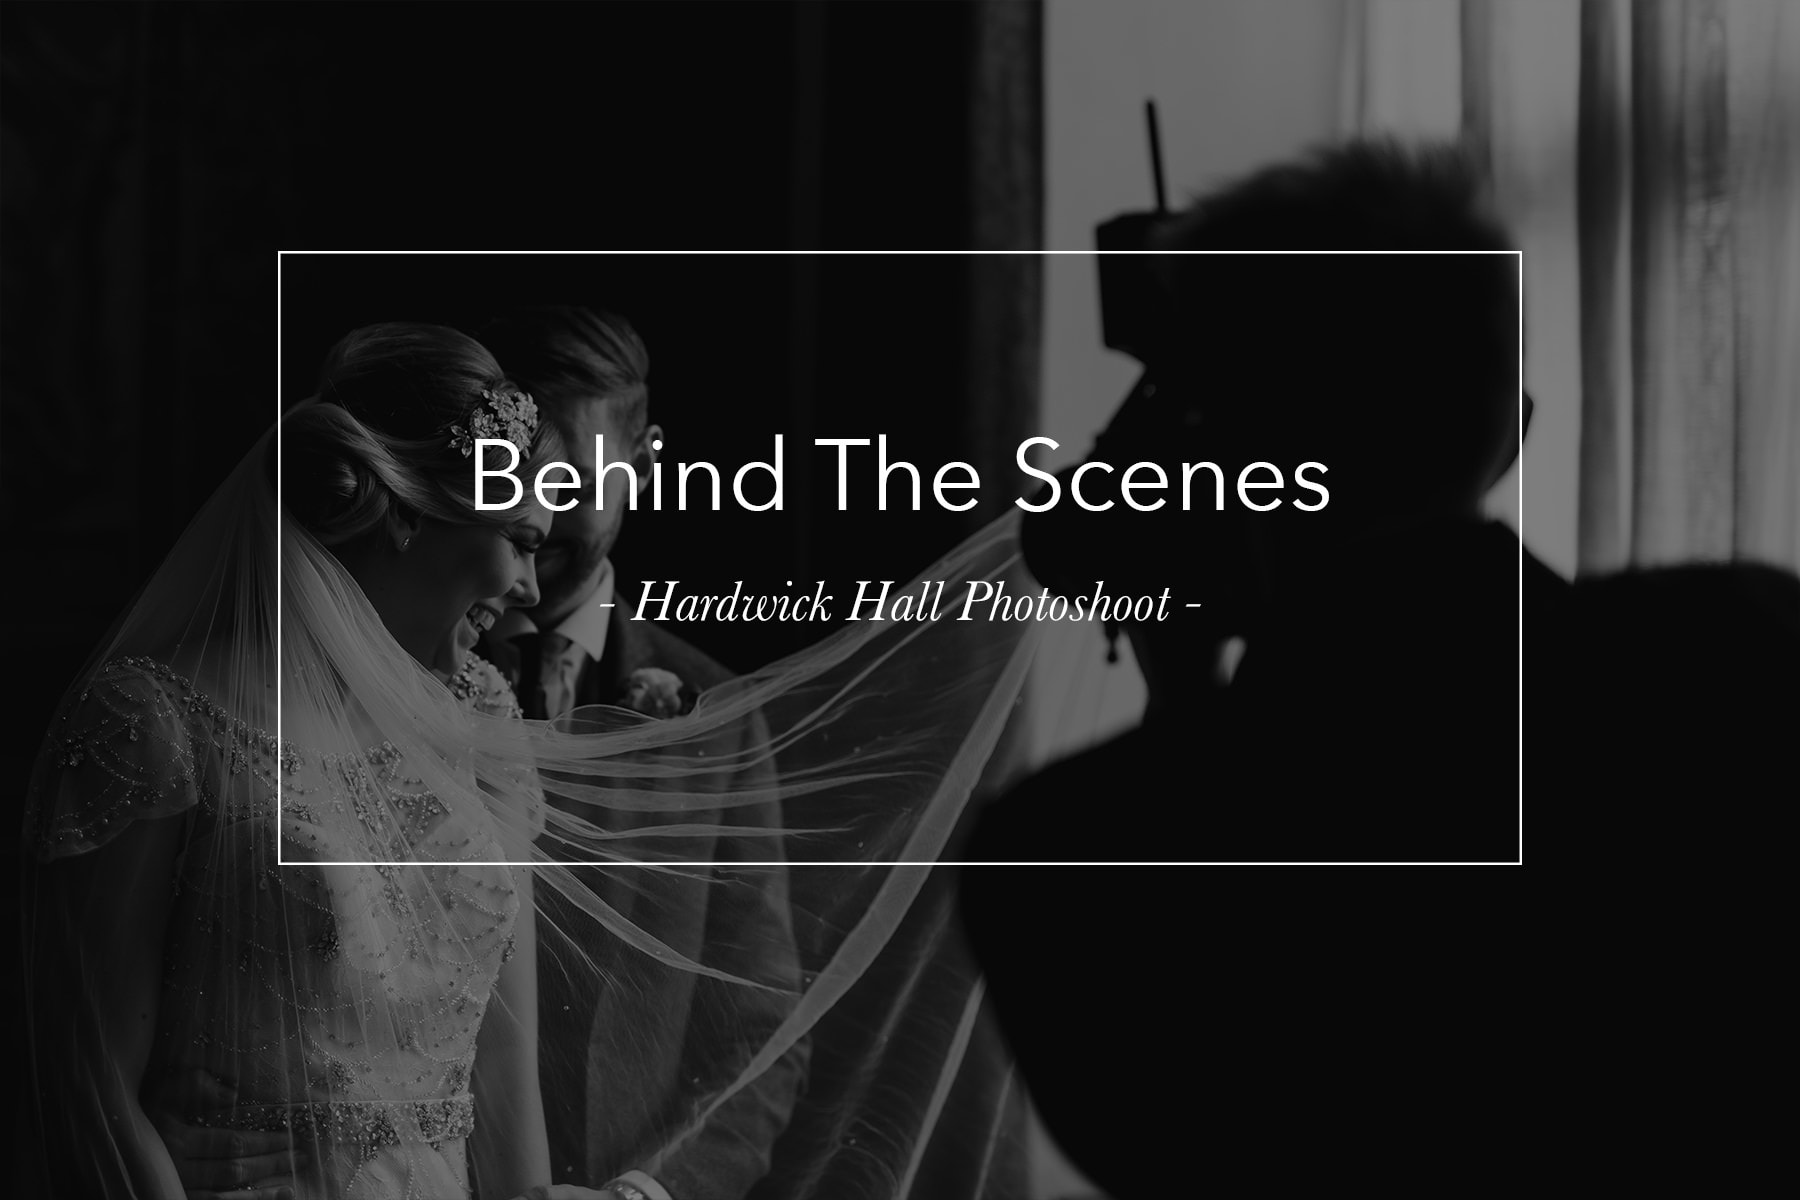 behind the scenes at Hardwick Hall